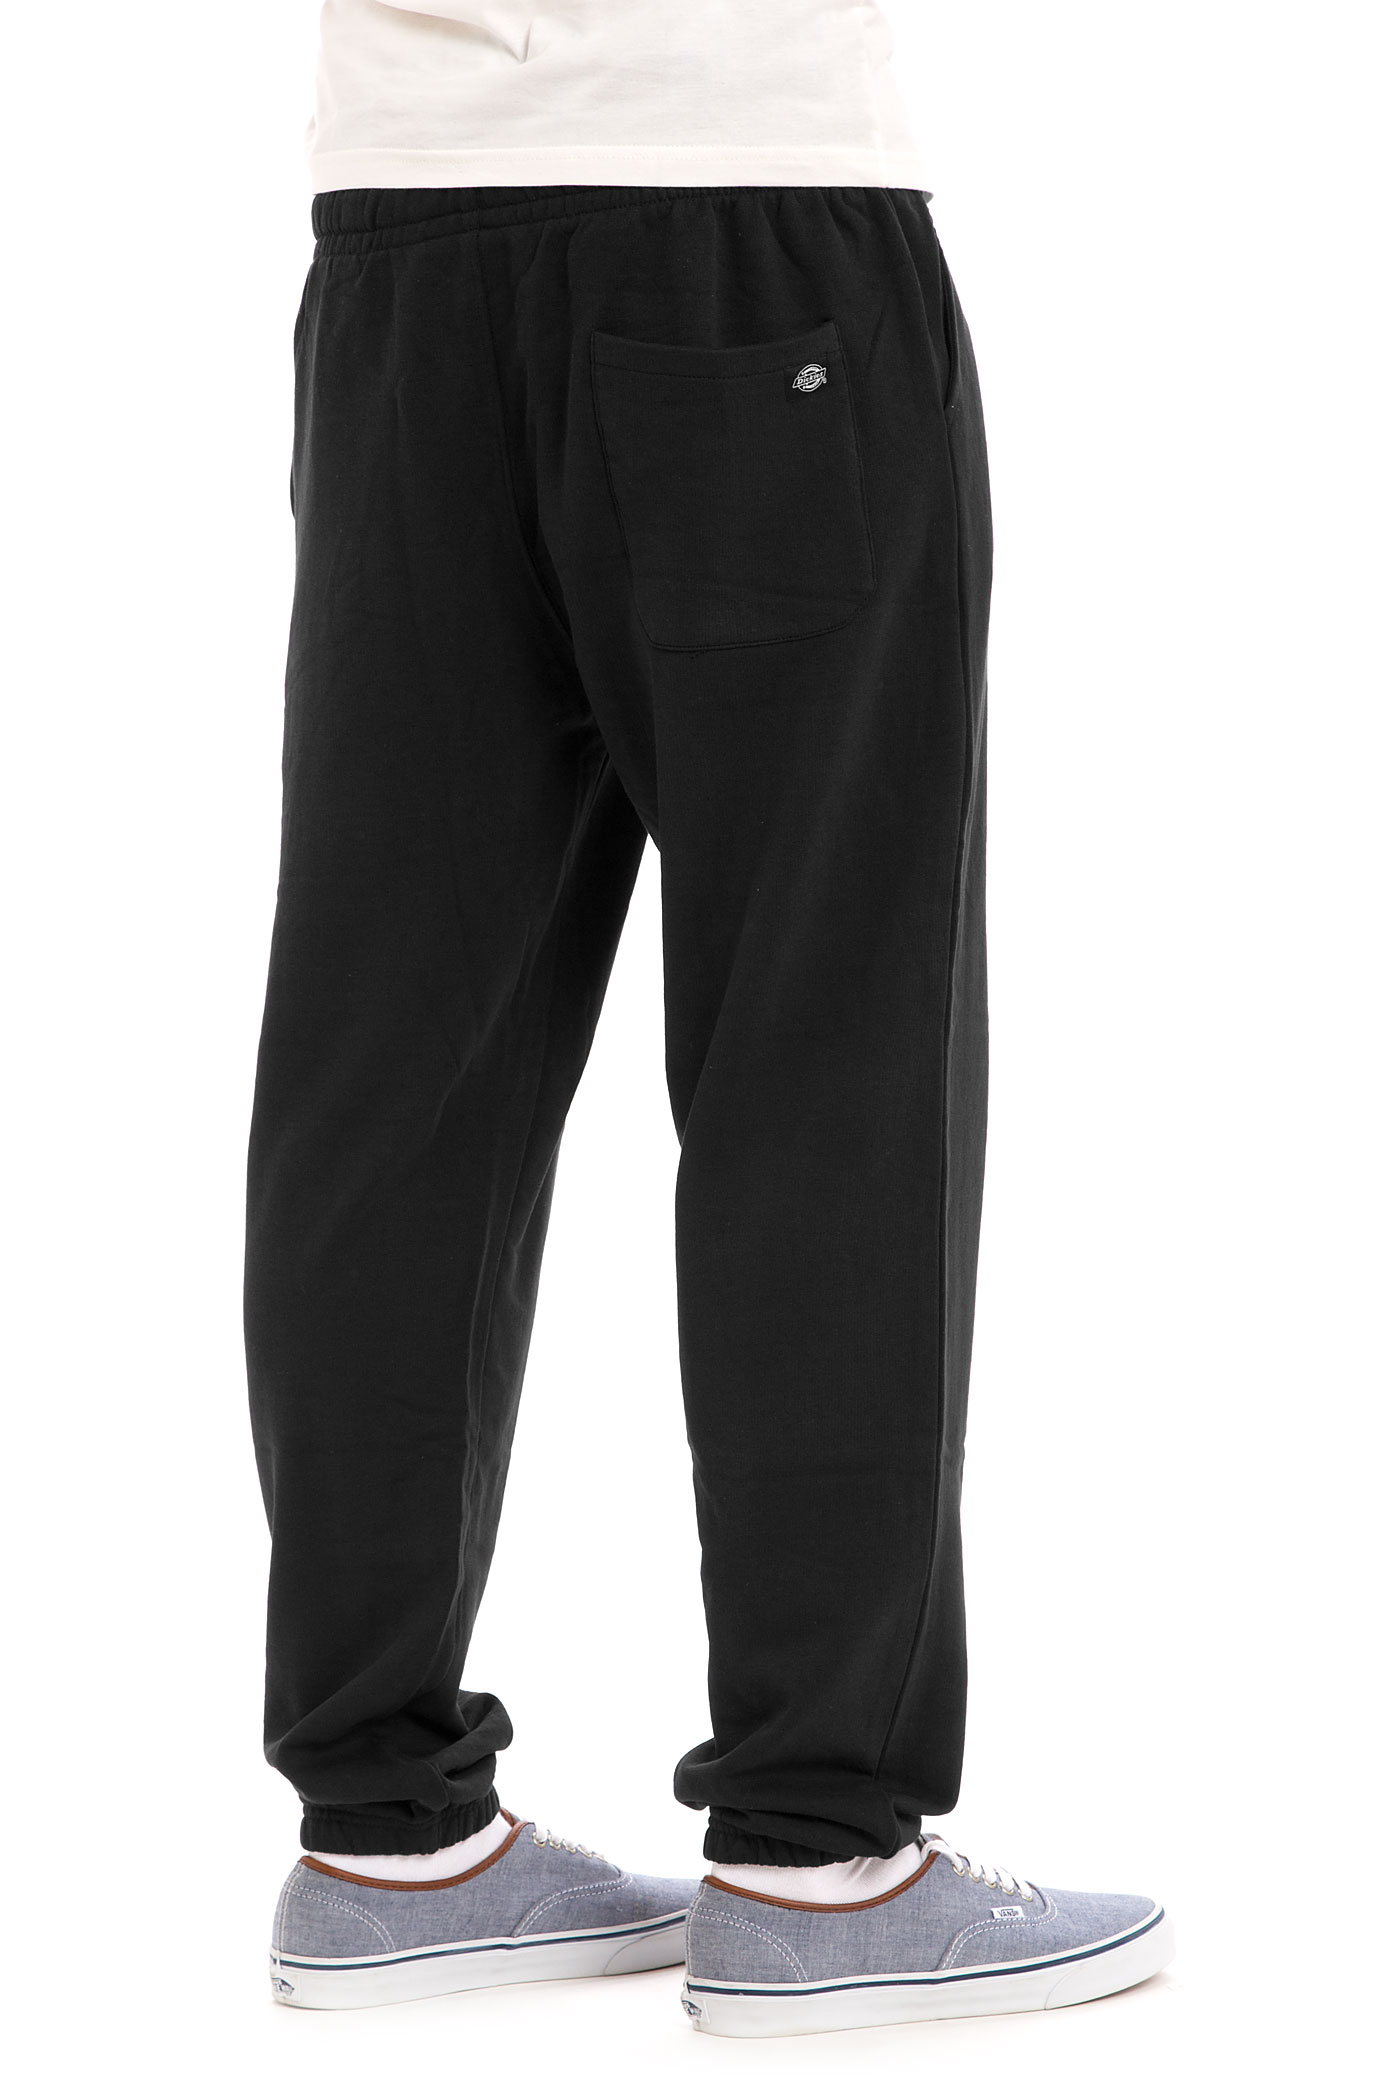 more dickies sweat pants 2 more sweat pants 20 dickies: https://www.skatedeluxe.ch/en/dickies-belmont-pants-black_p72025